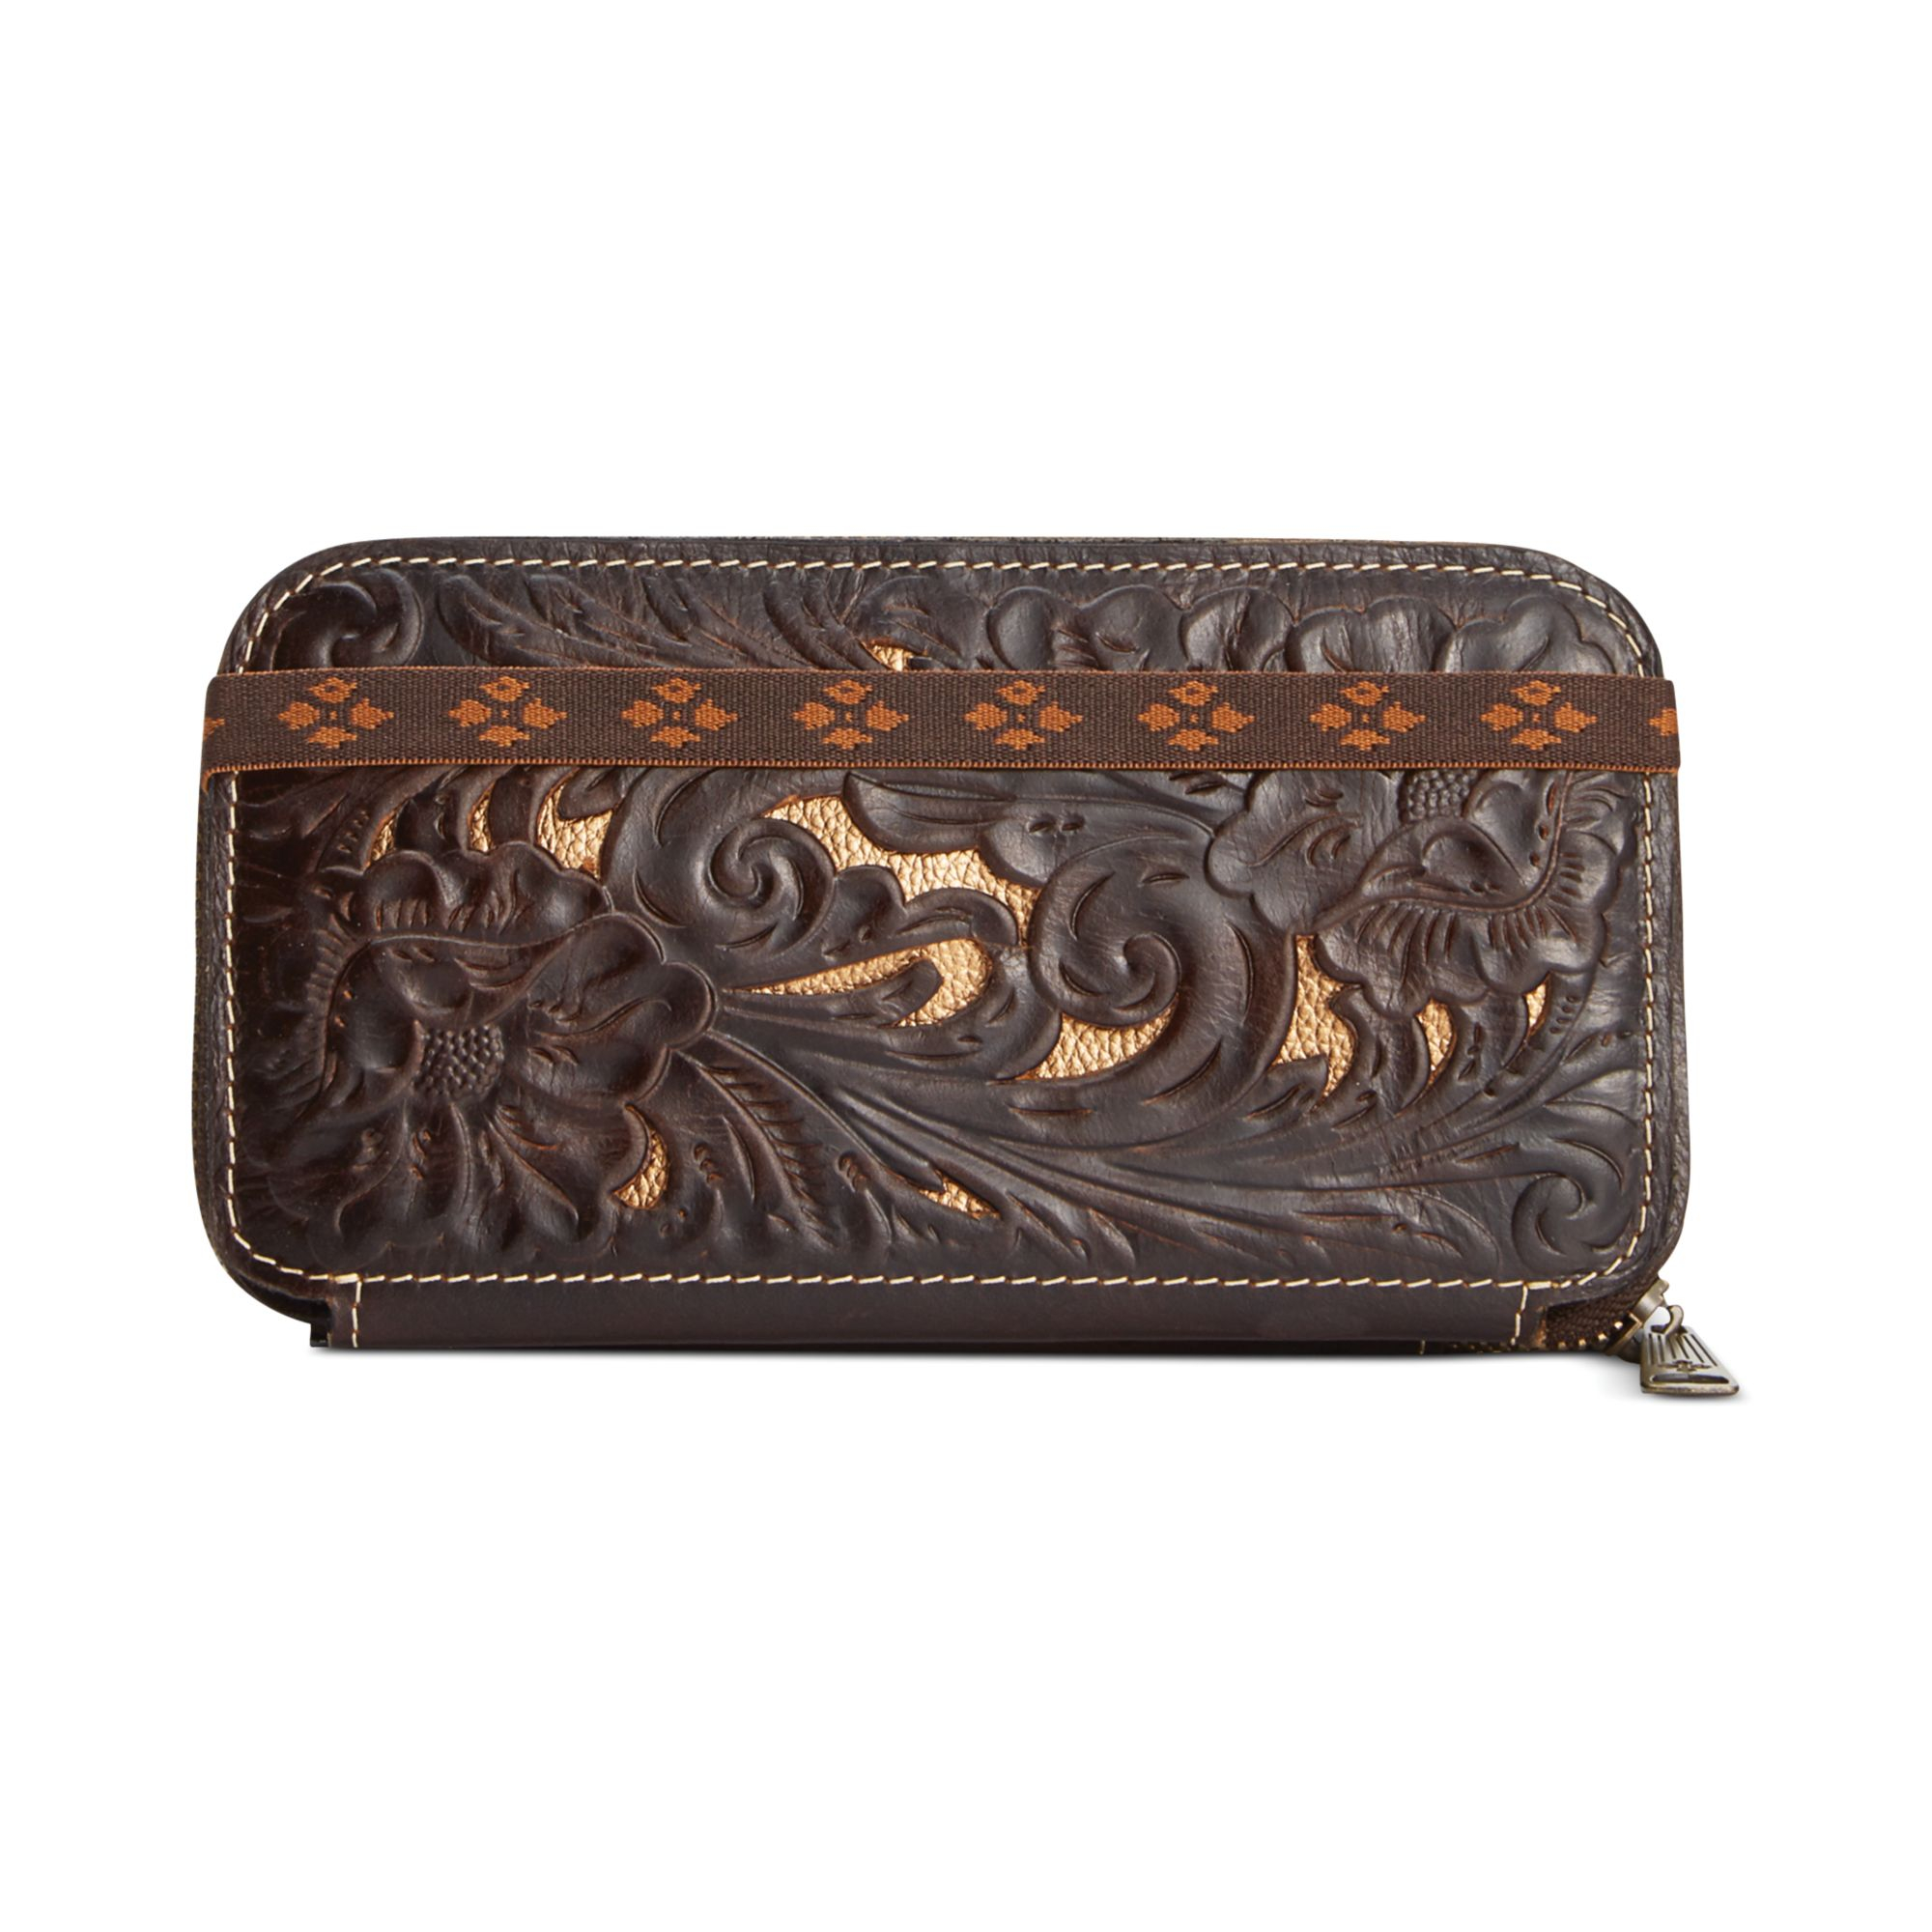 Patricia nash Tooled Oria Wallet in Brown   Lyst